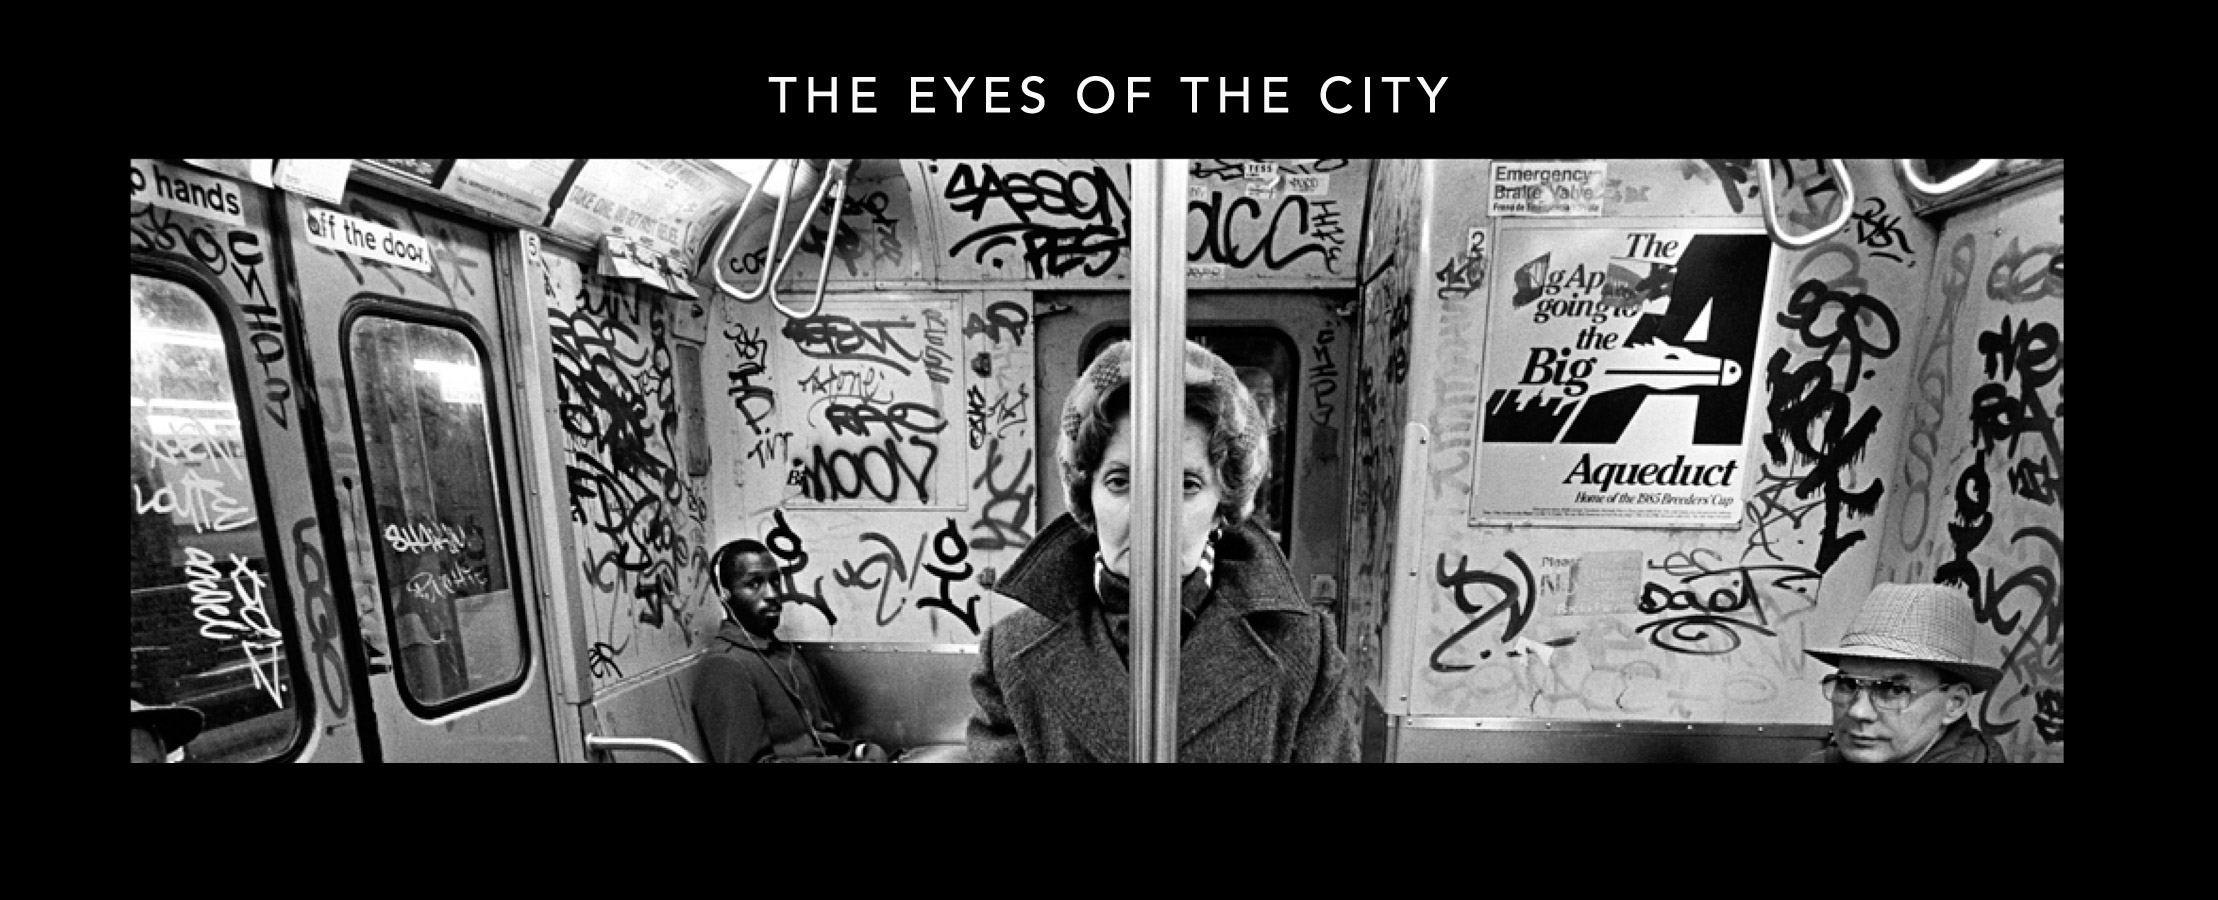 The Eyes of the City : The Transitioning Richard Sandler